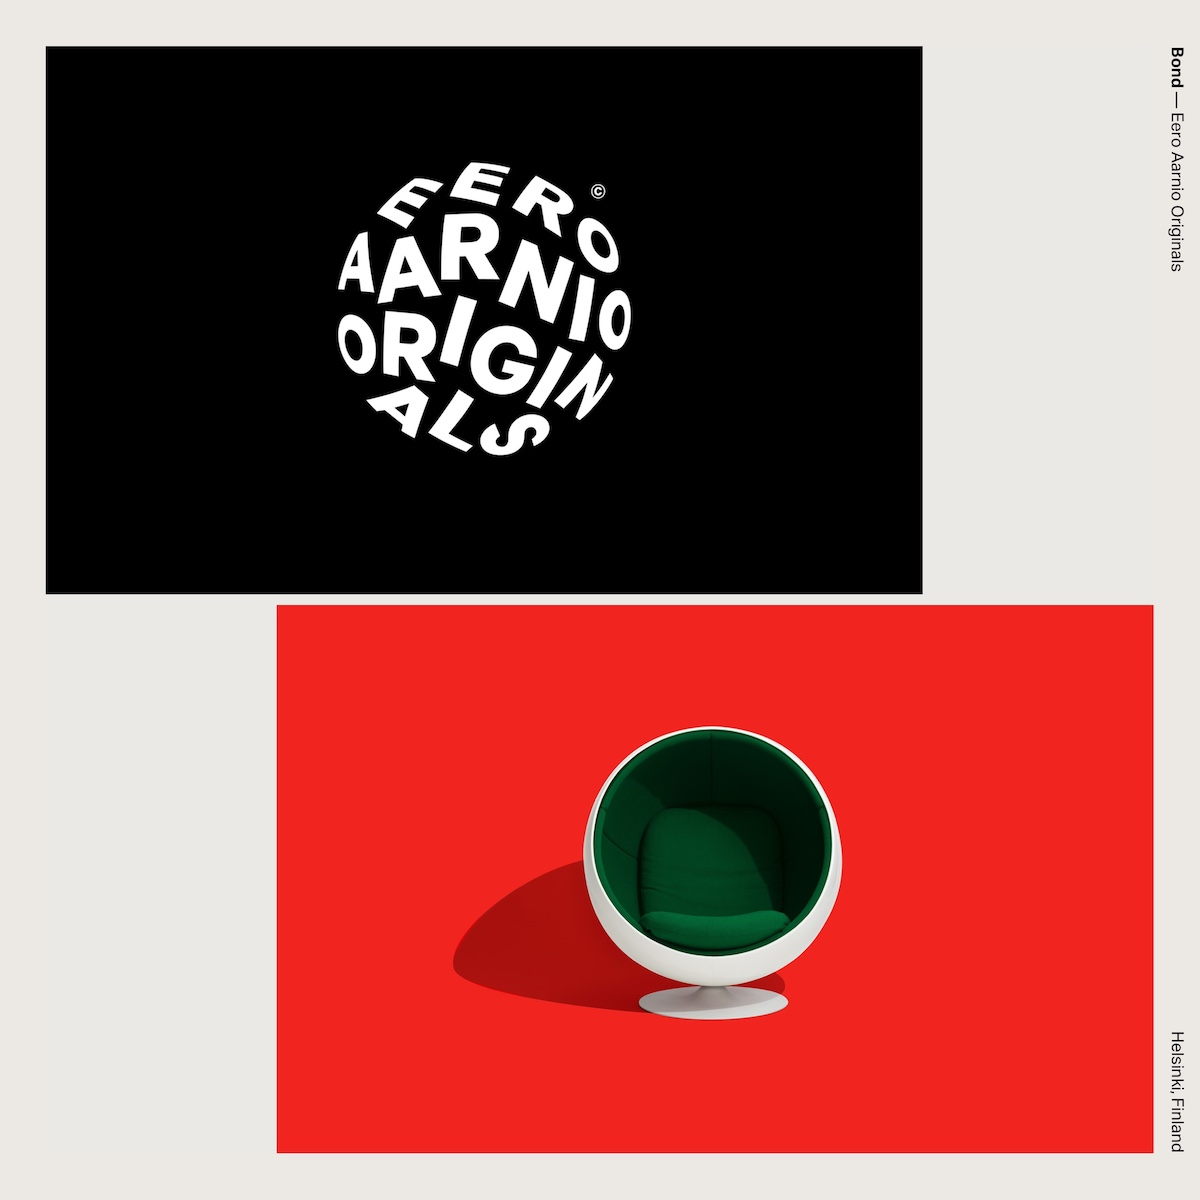 Bond — Eero Aarnio Originals